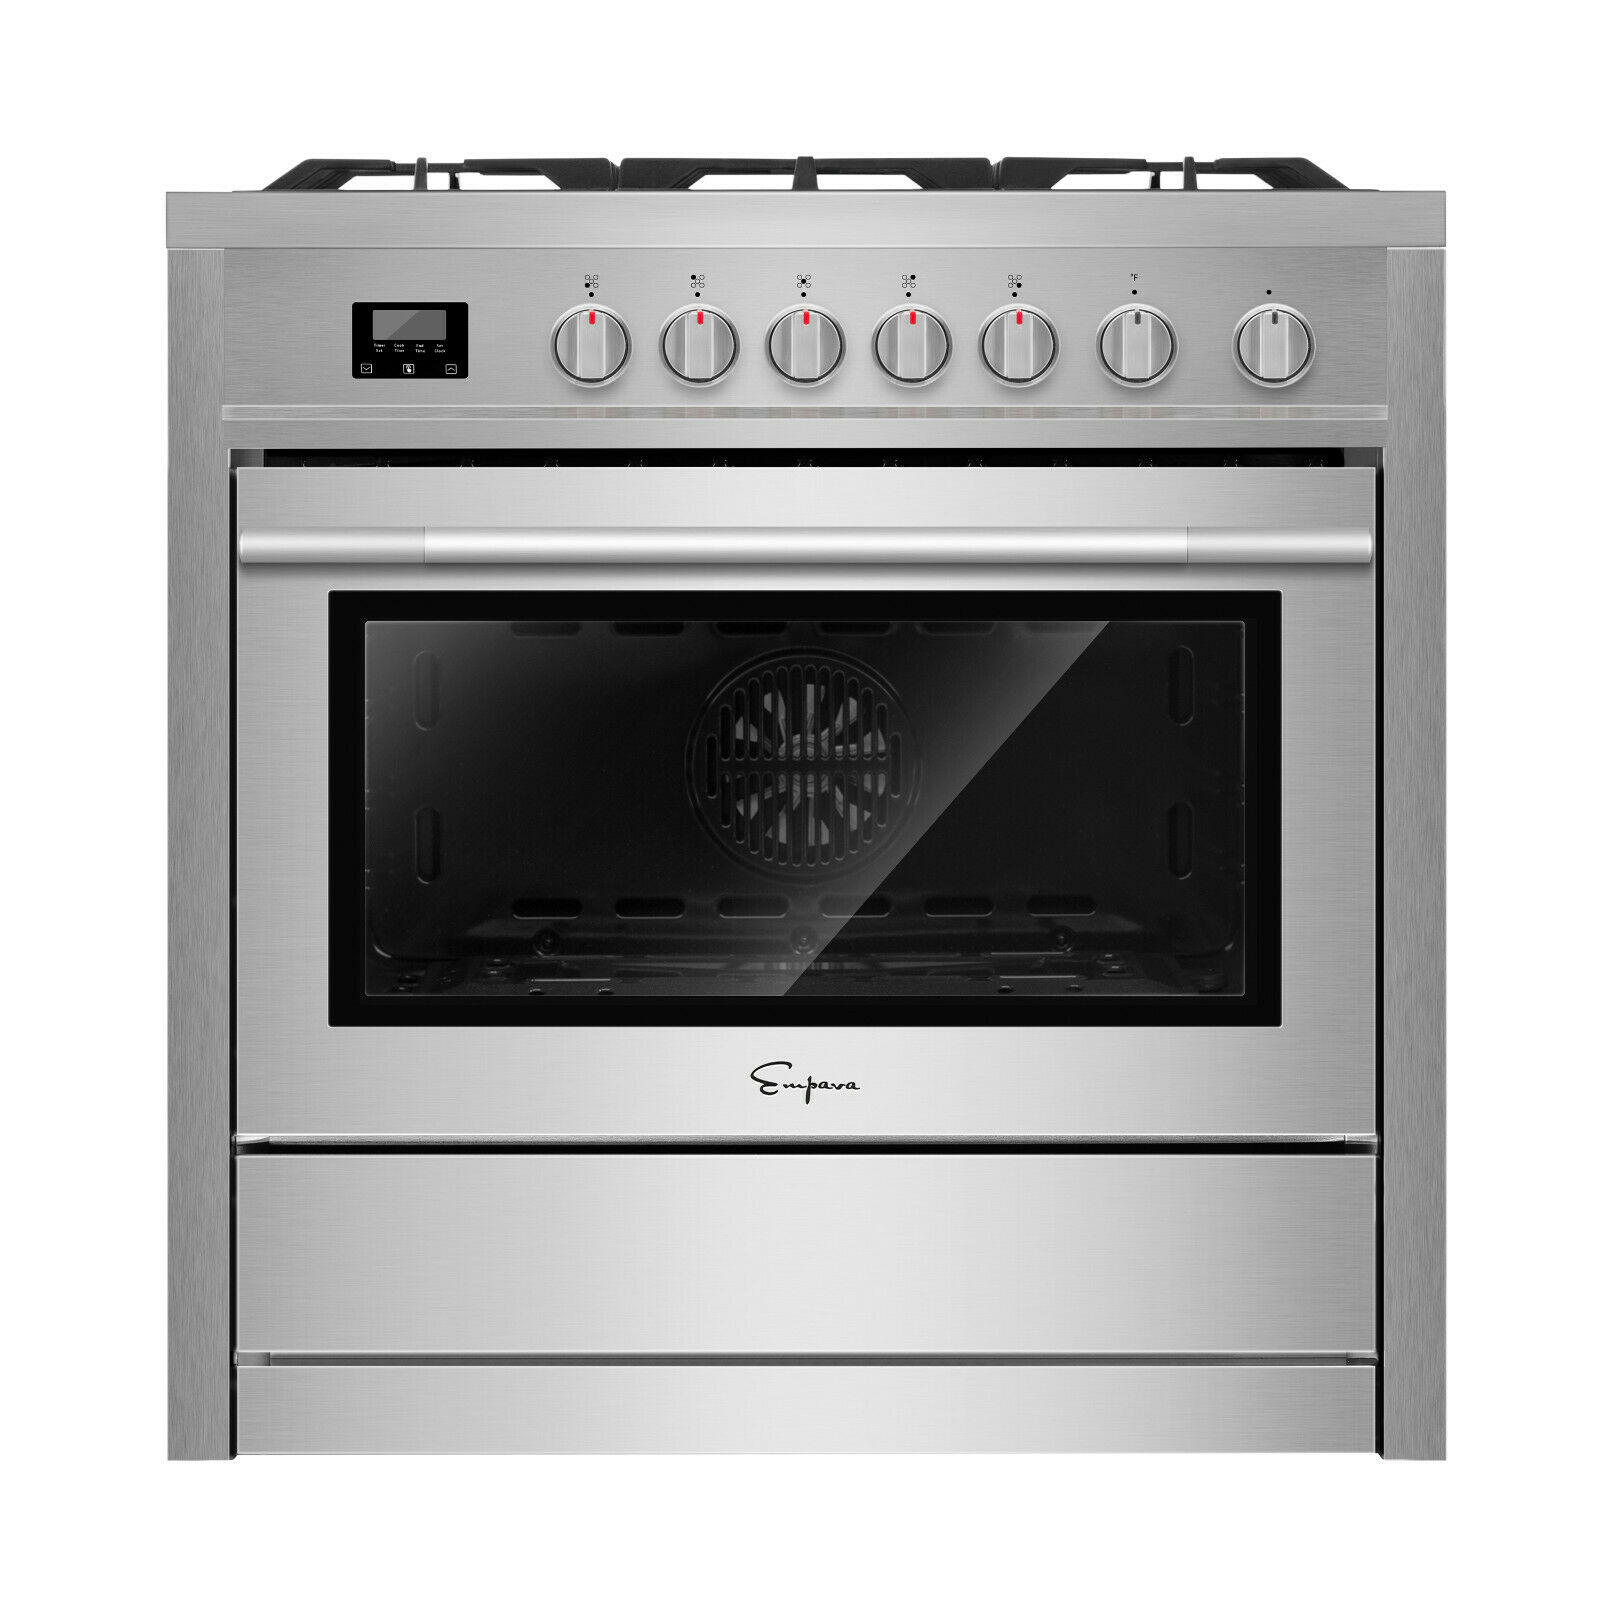 "Empava 36"" Slide-In Single Oven Gas Range with 5 Burners Coo"